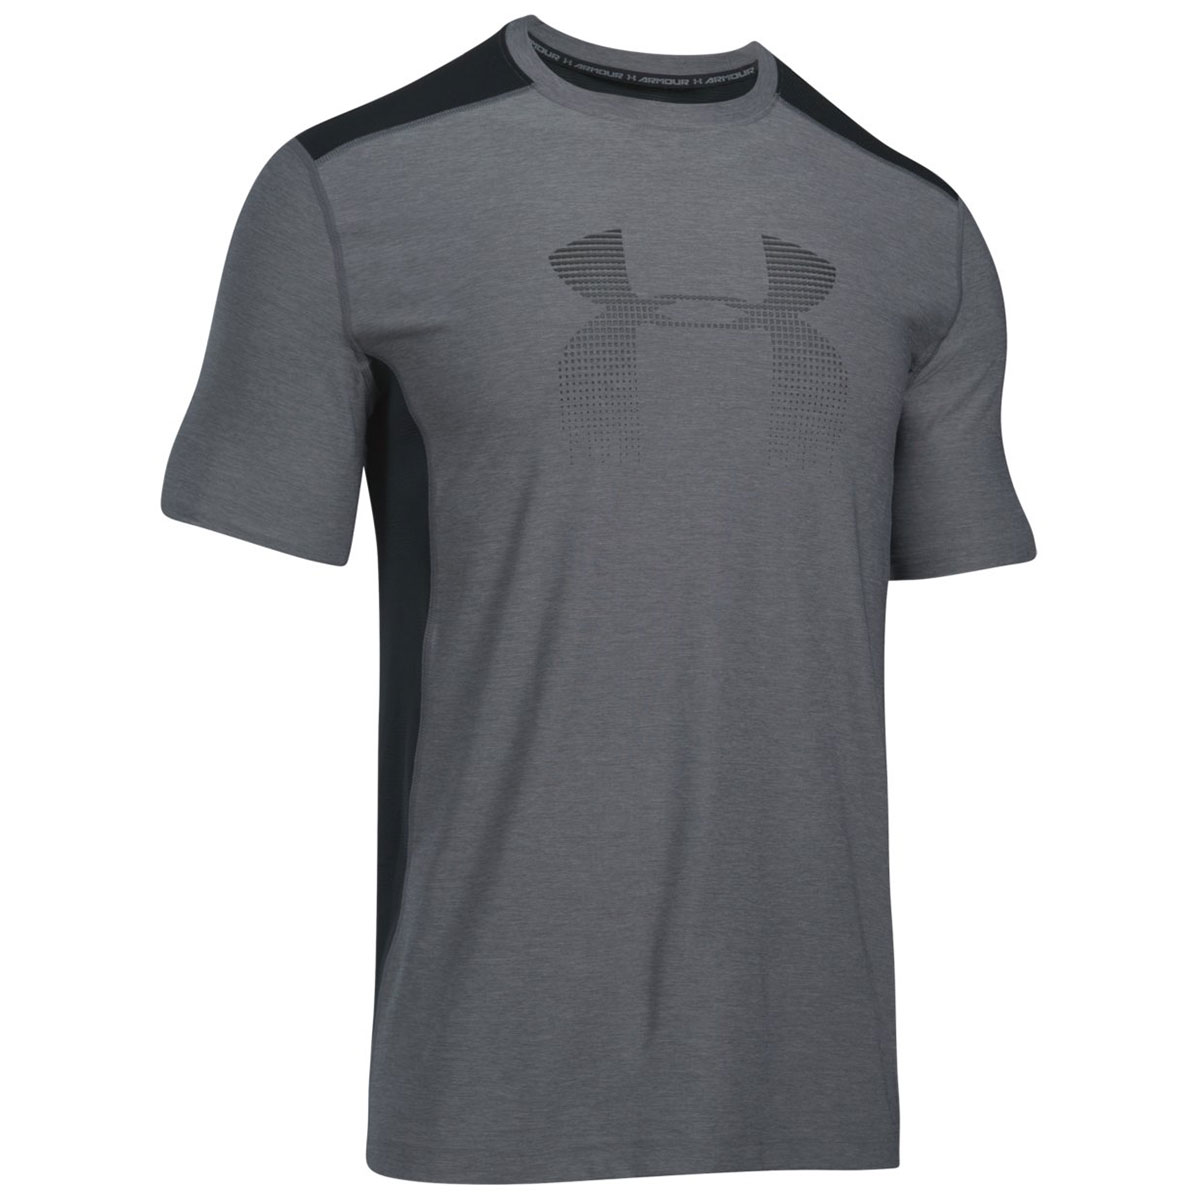 Cheap Latest Under Armour Raid Graphic Short Sleeve Training T-Shirt for Men On Sale Online Sale